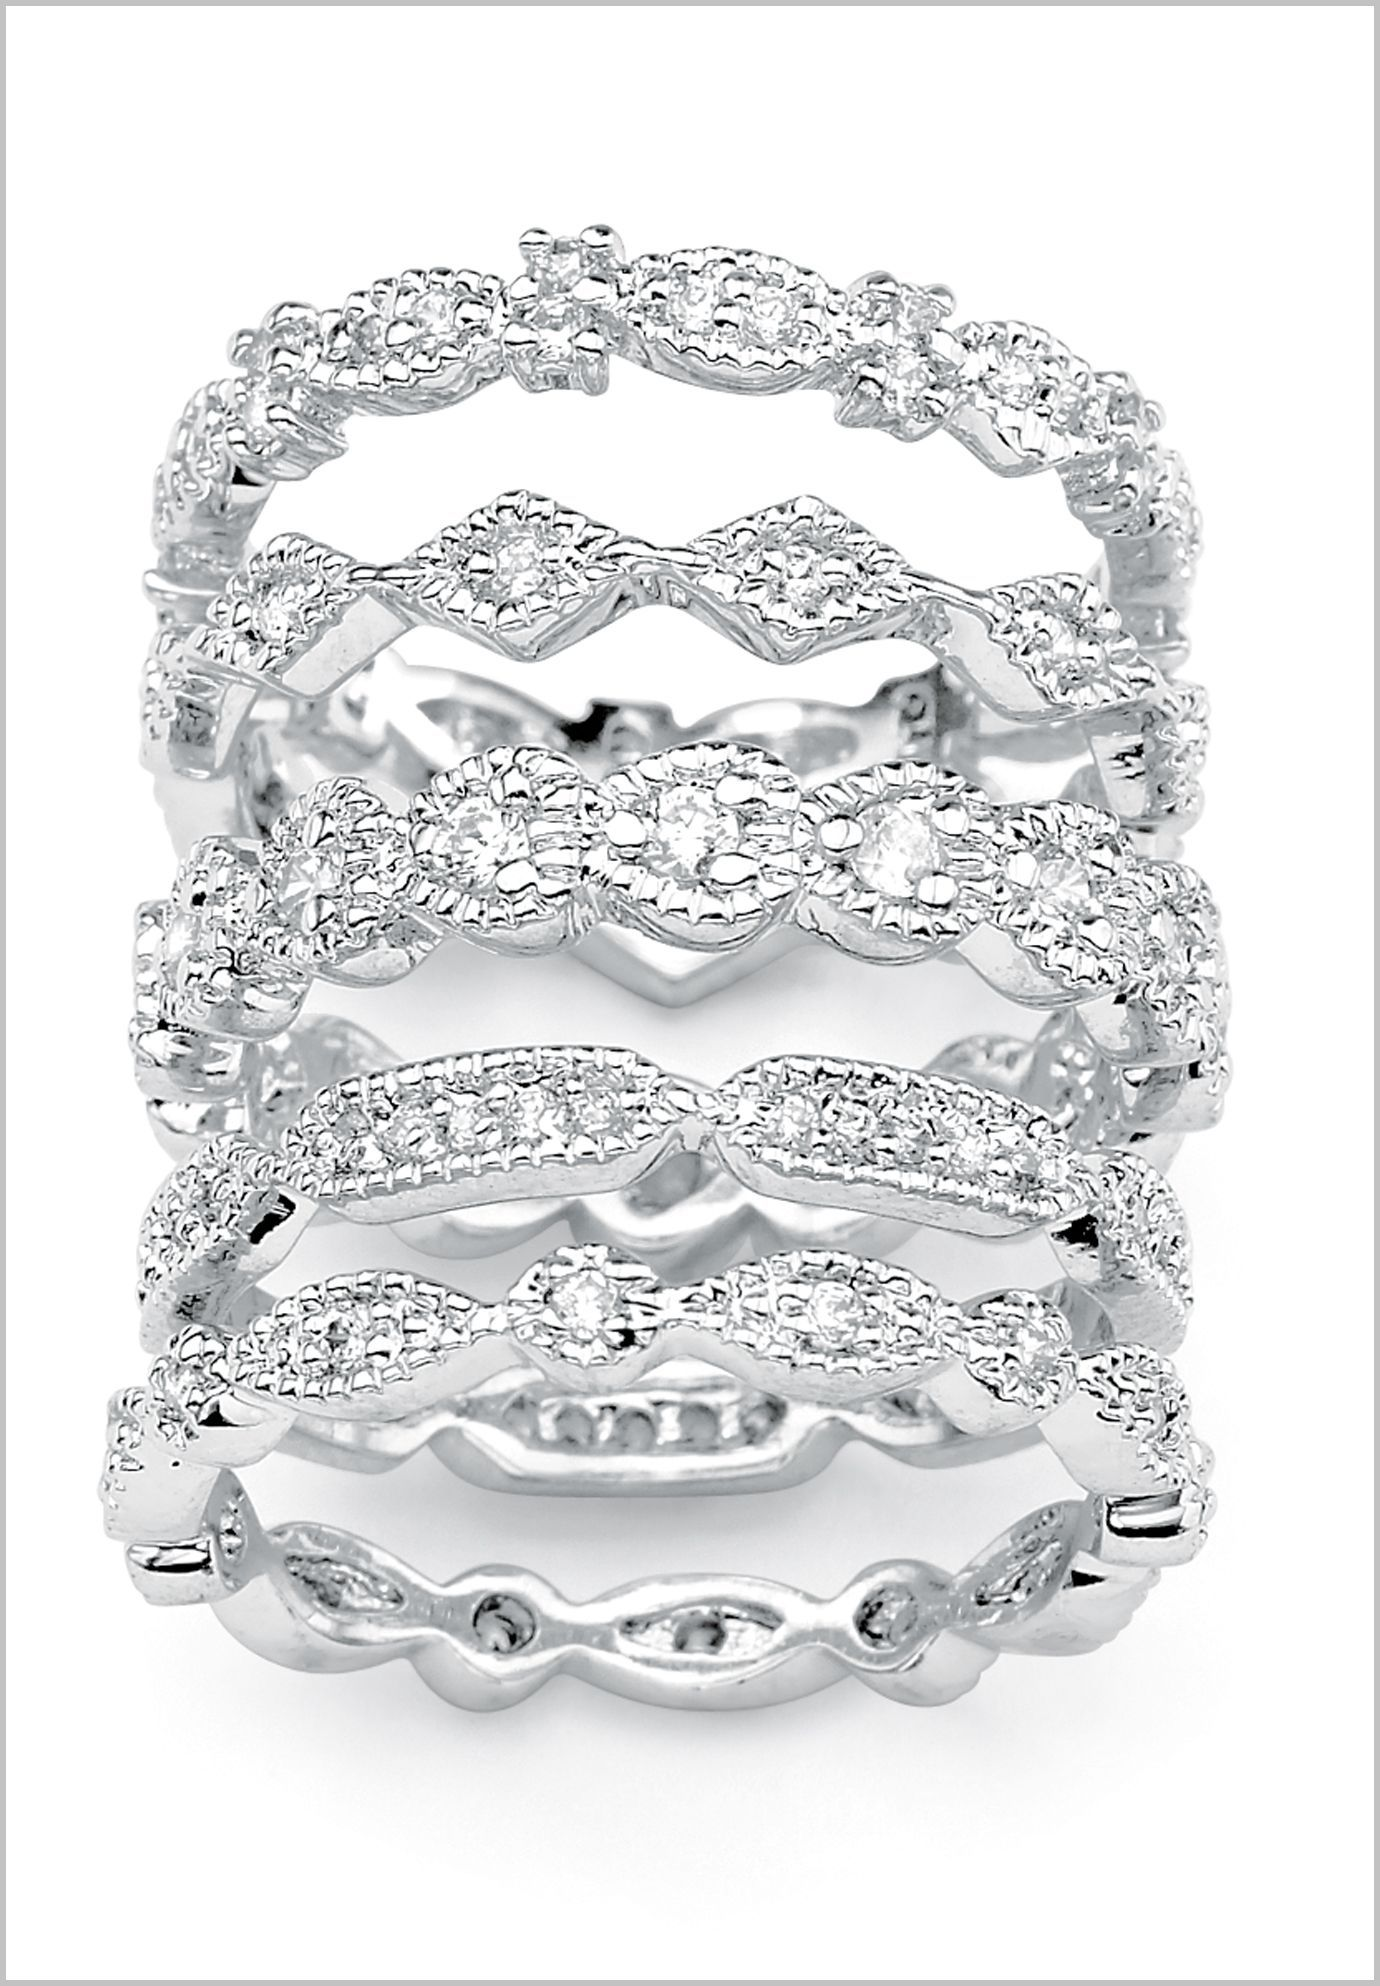 overstock wedding rings PalmBeach CZ Silvertone Cubic Zirconia Stackable Eternity Rings Set of Classic CZ Overstock Shopping Big Discounts on Palm Beach Jewelry Cubic